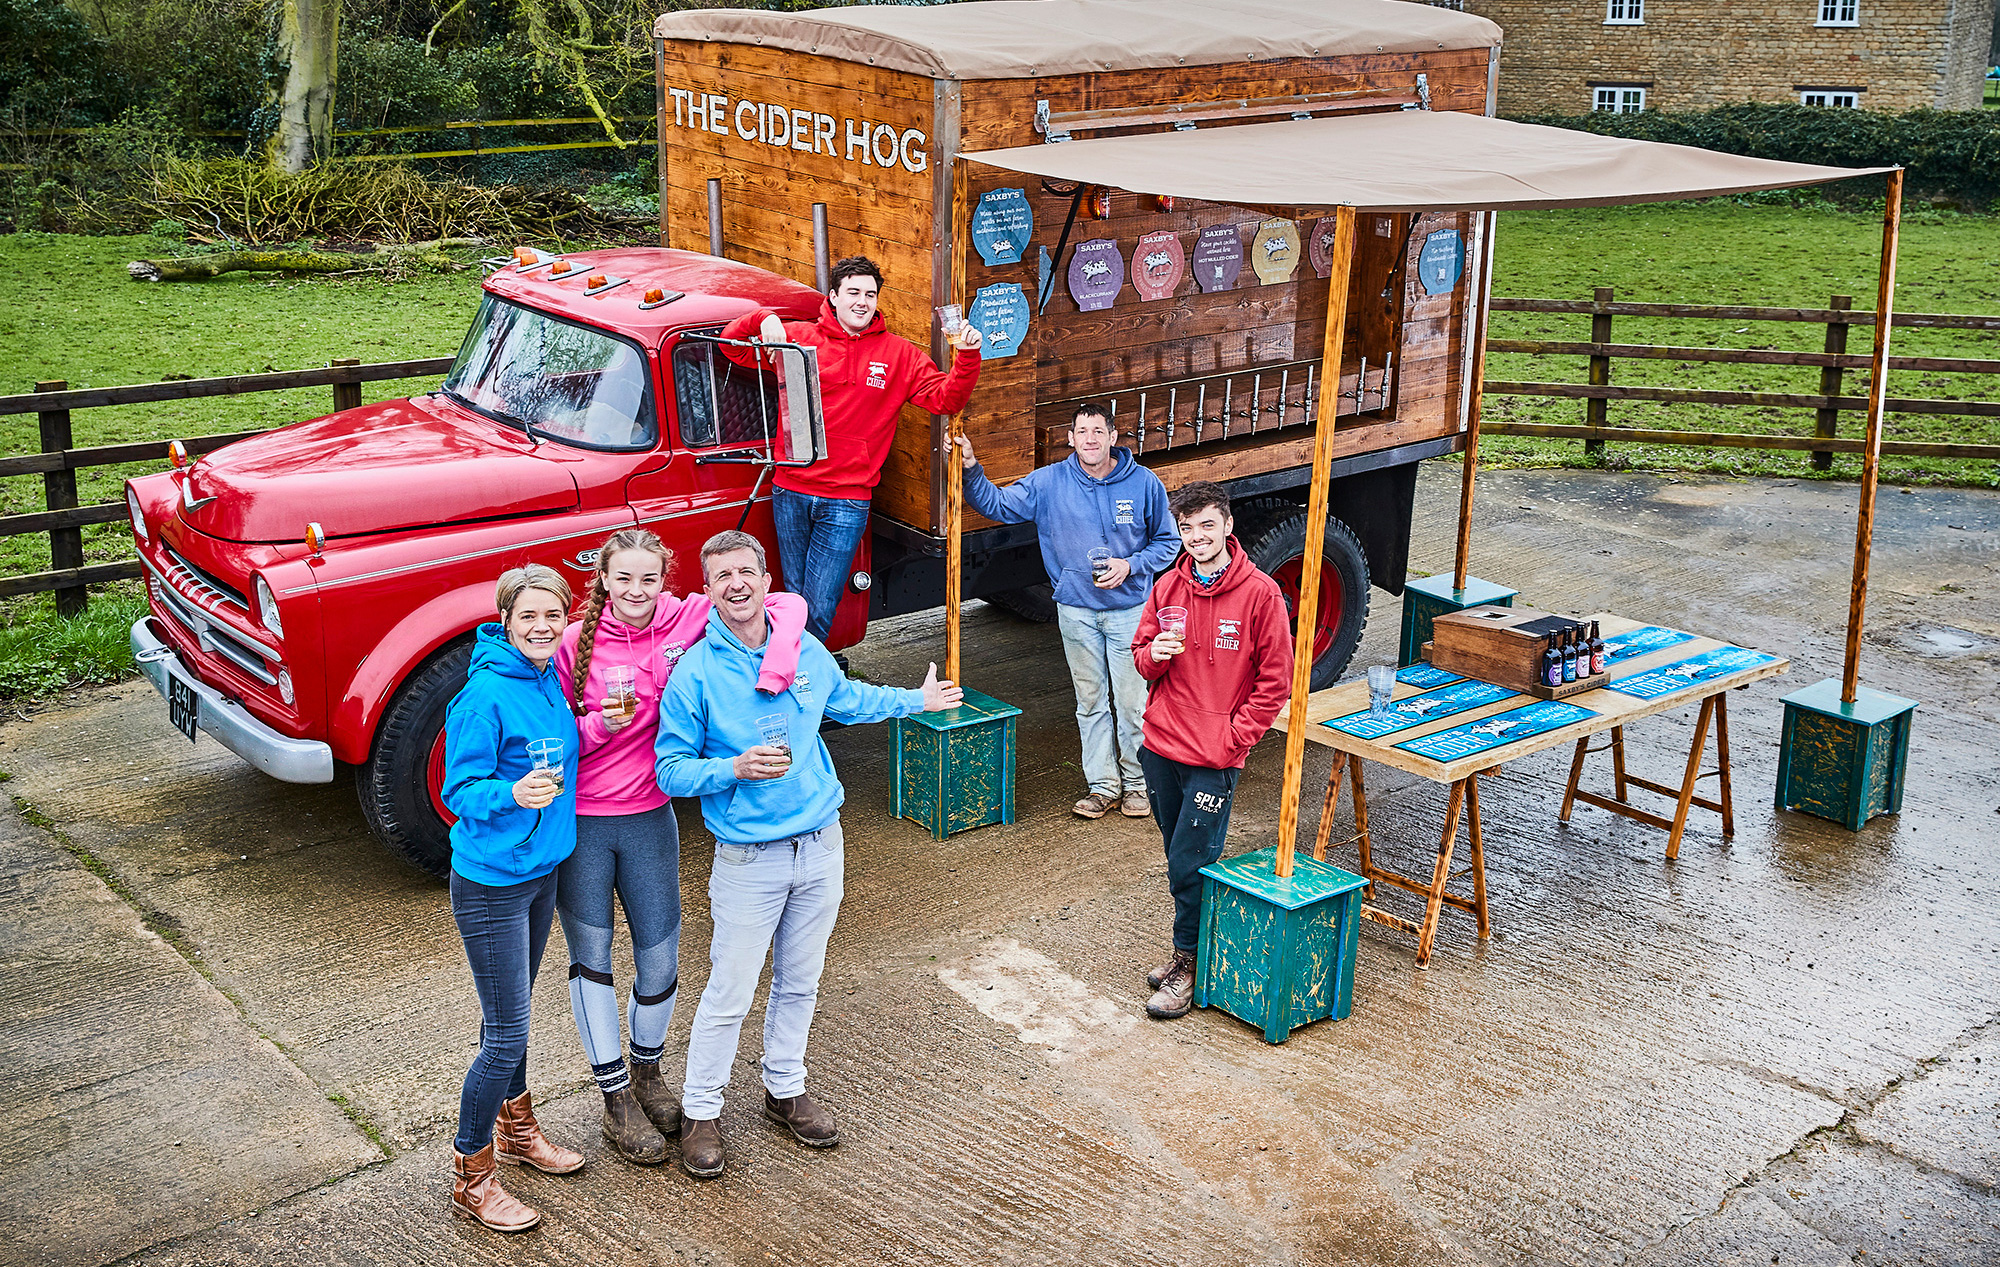 cider-hog-mobile-bar-18a.jpg